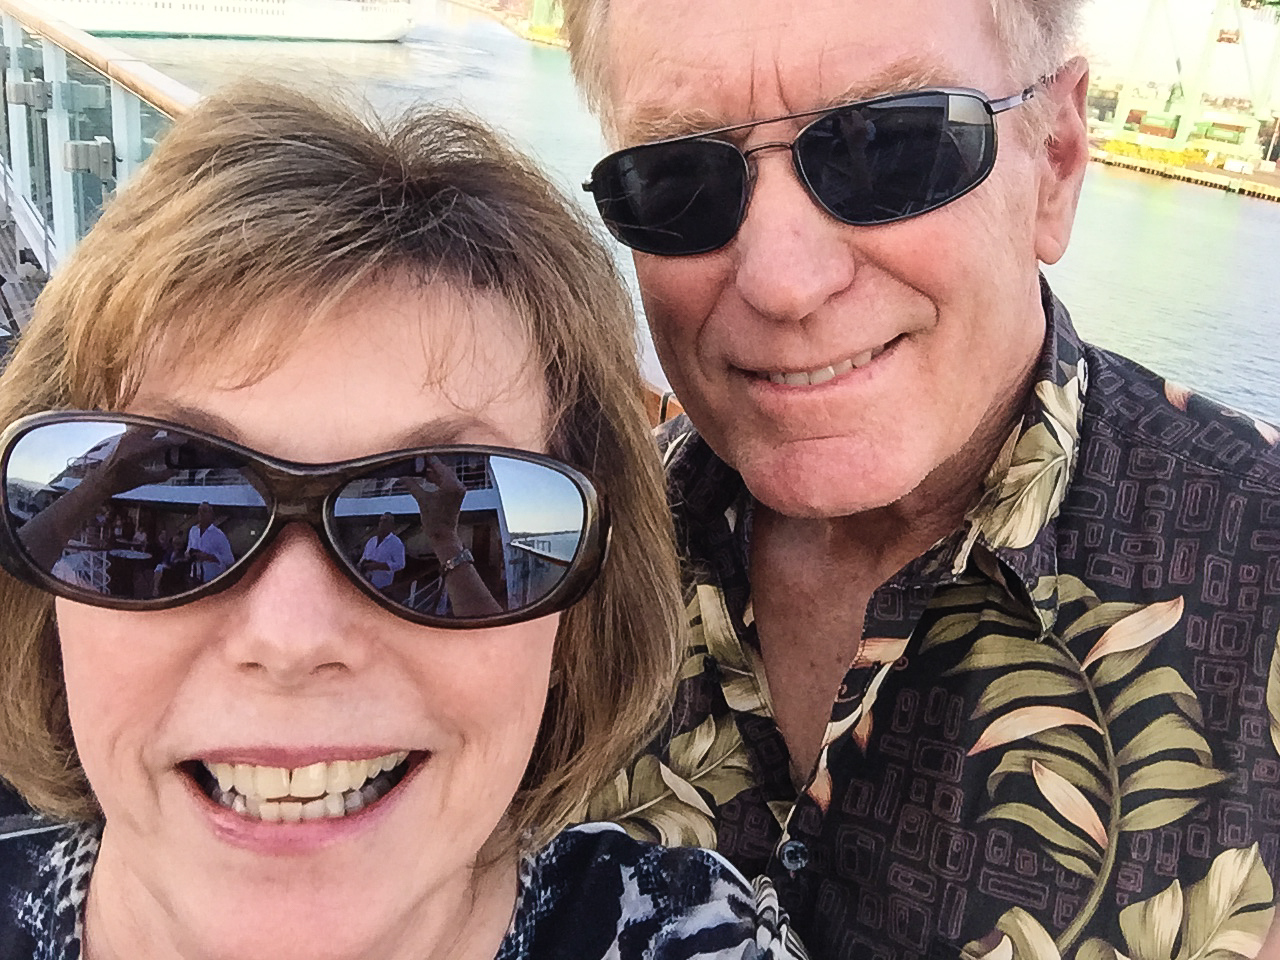 A baby boomer man and woman smile as they leave on a luxury cruise.